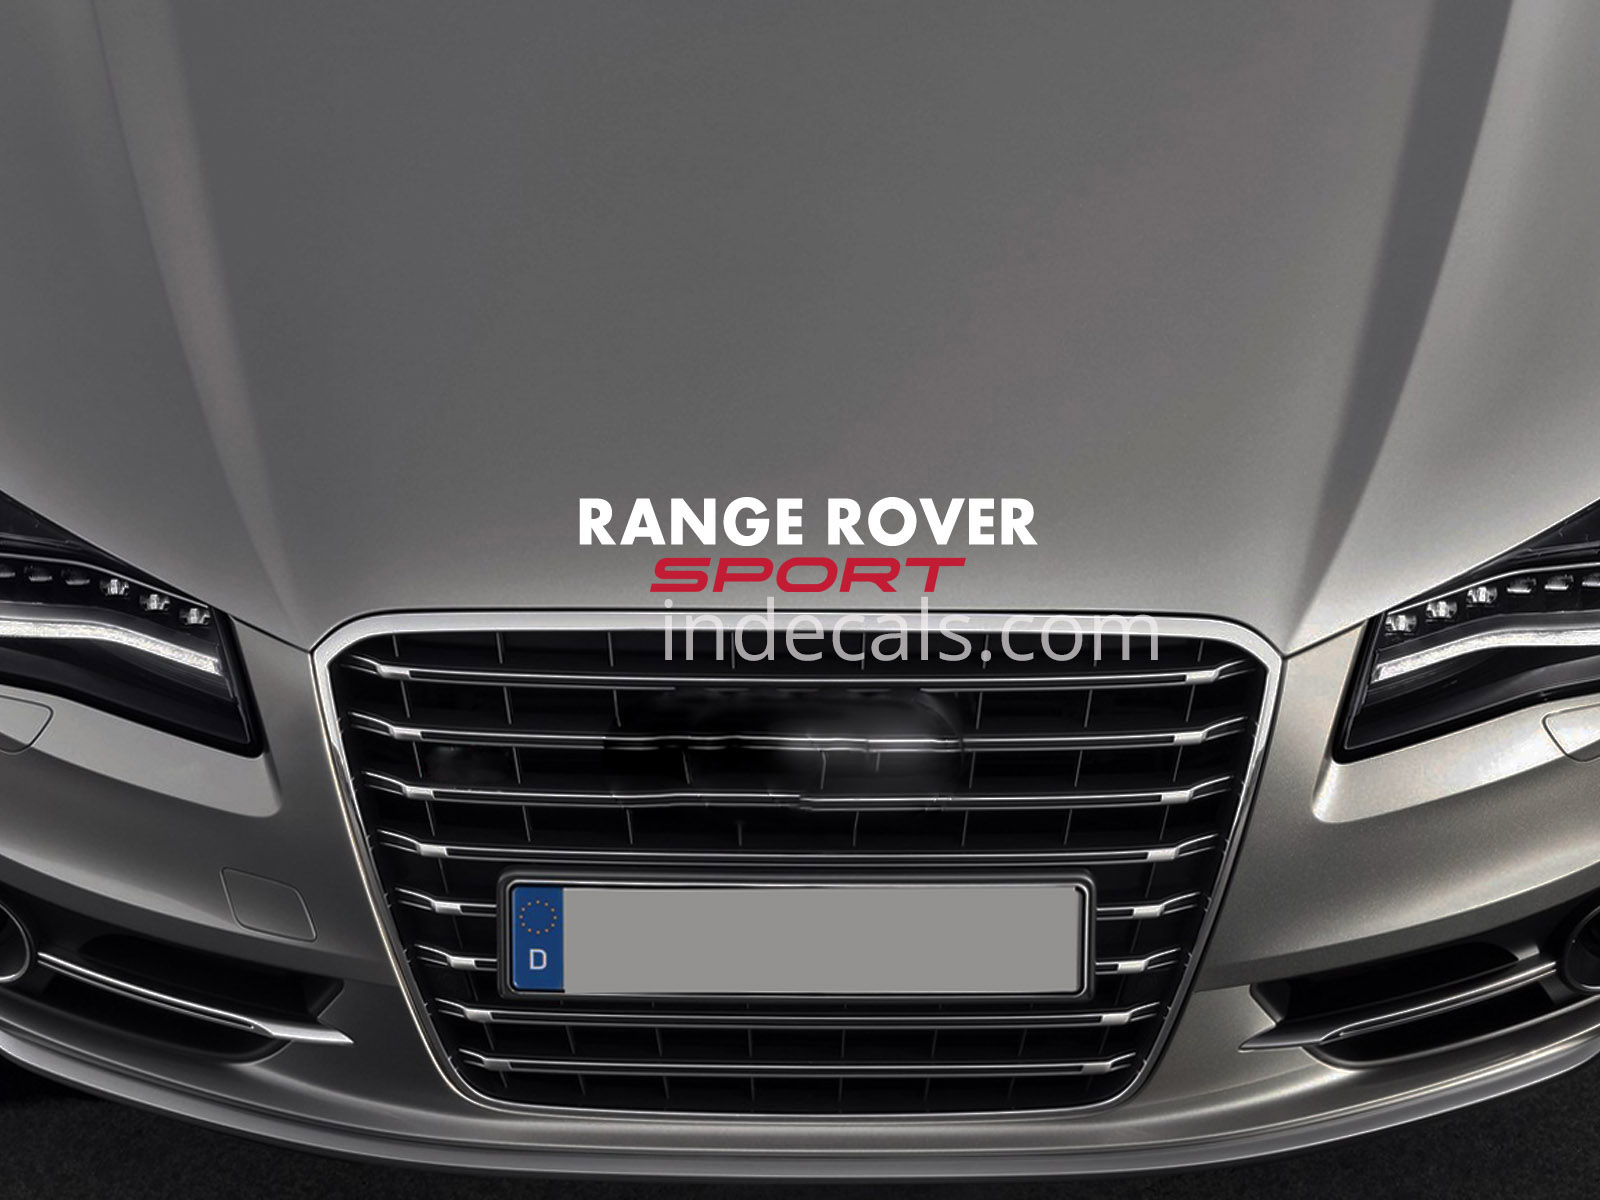 1 x Range Rover Sport Sticker for Bonnet - White & Red